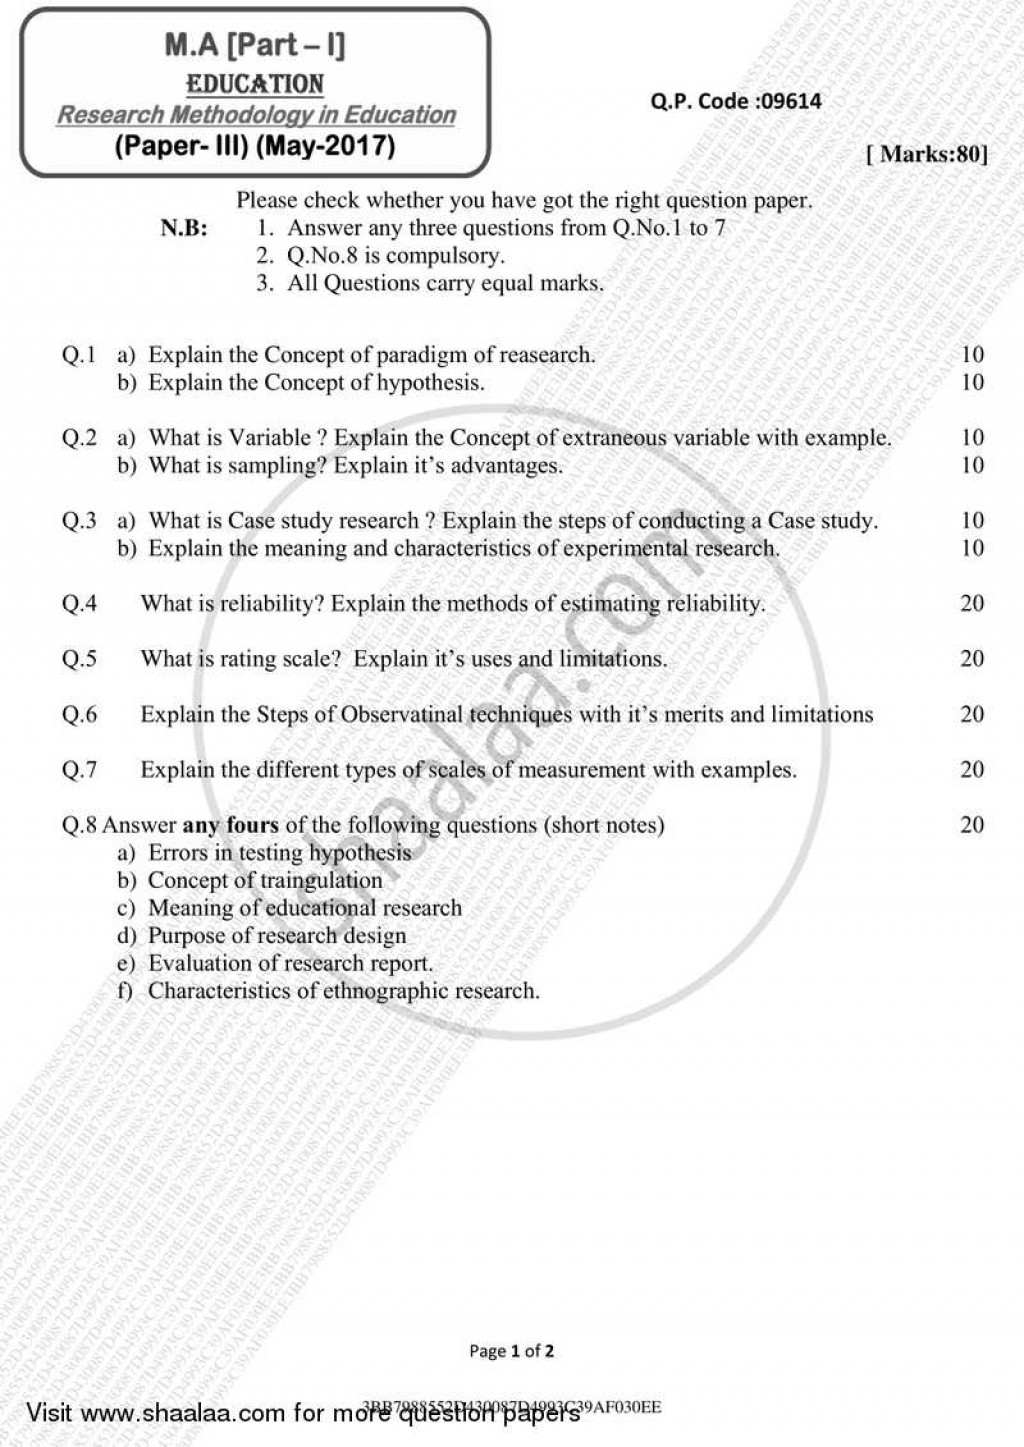 015 Education Researchs Pdf University Of Mumbai Master Ma Methodology Yearly Pattern Part 2017 2f9b9e59f7e3e4986b1075c98d73ba80a Exceptional Research Papers Early Childhood Paper Inclusive Large